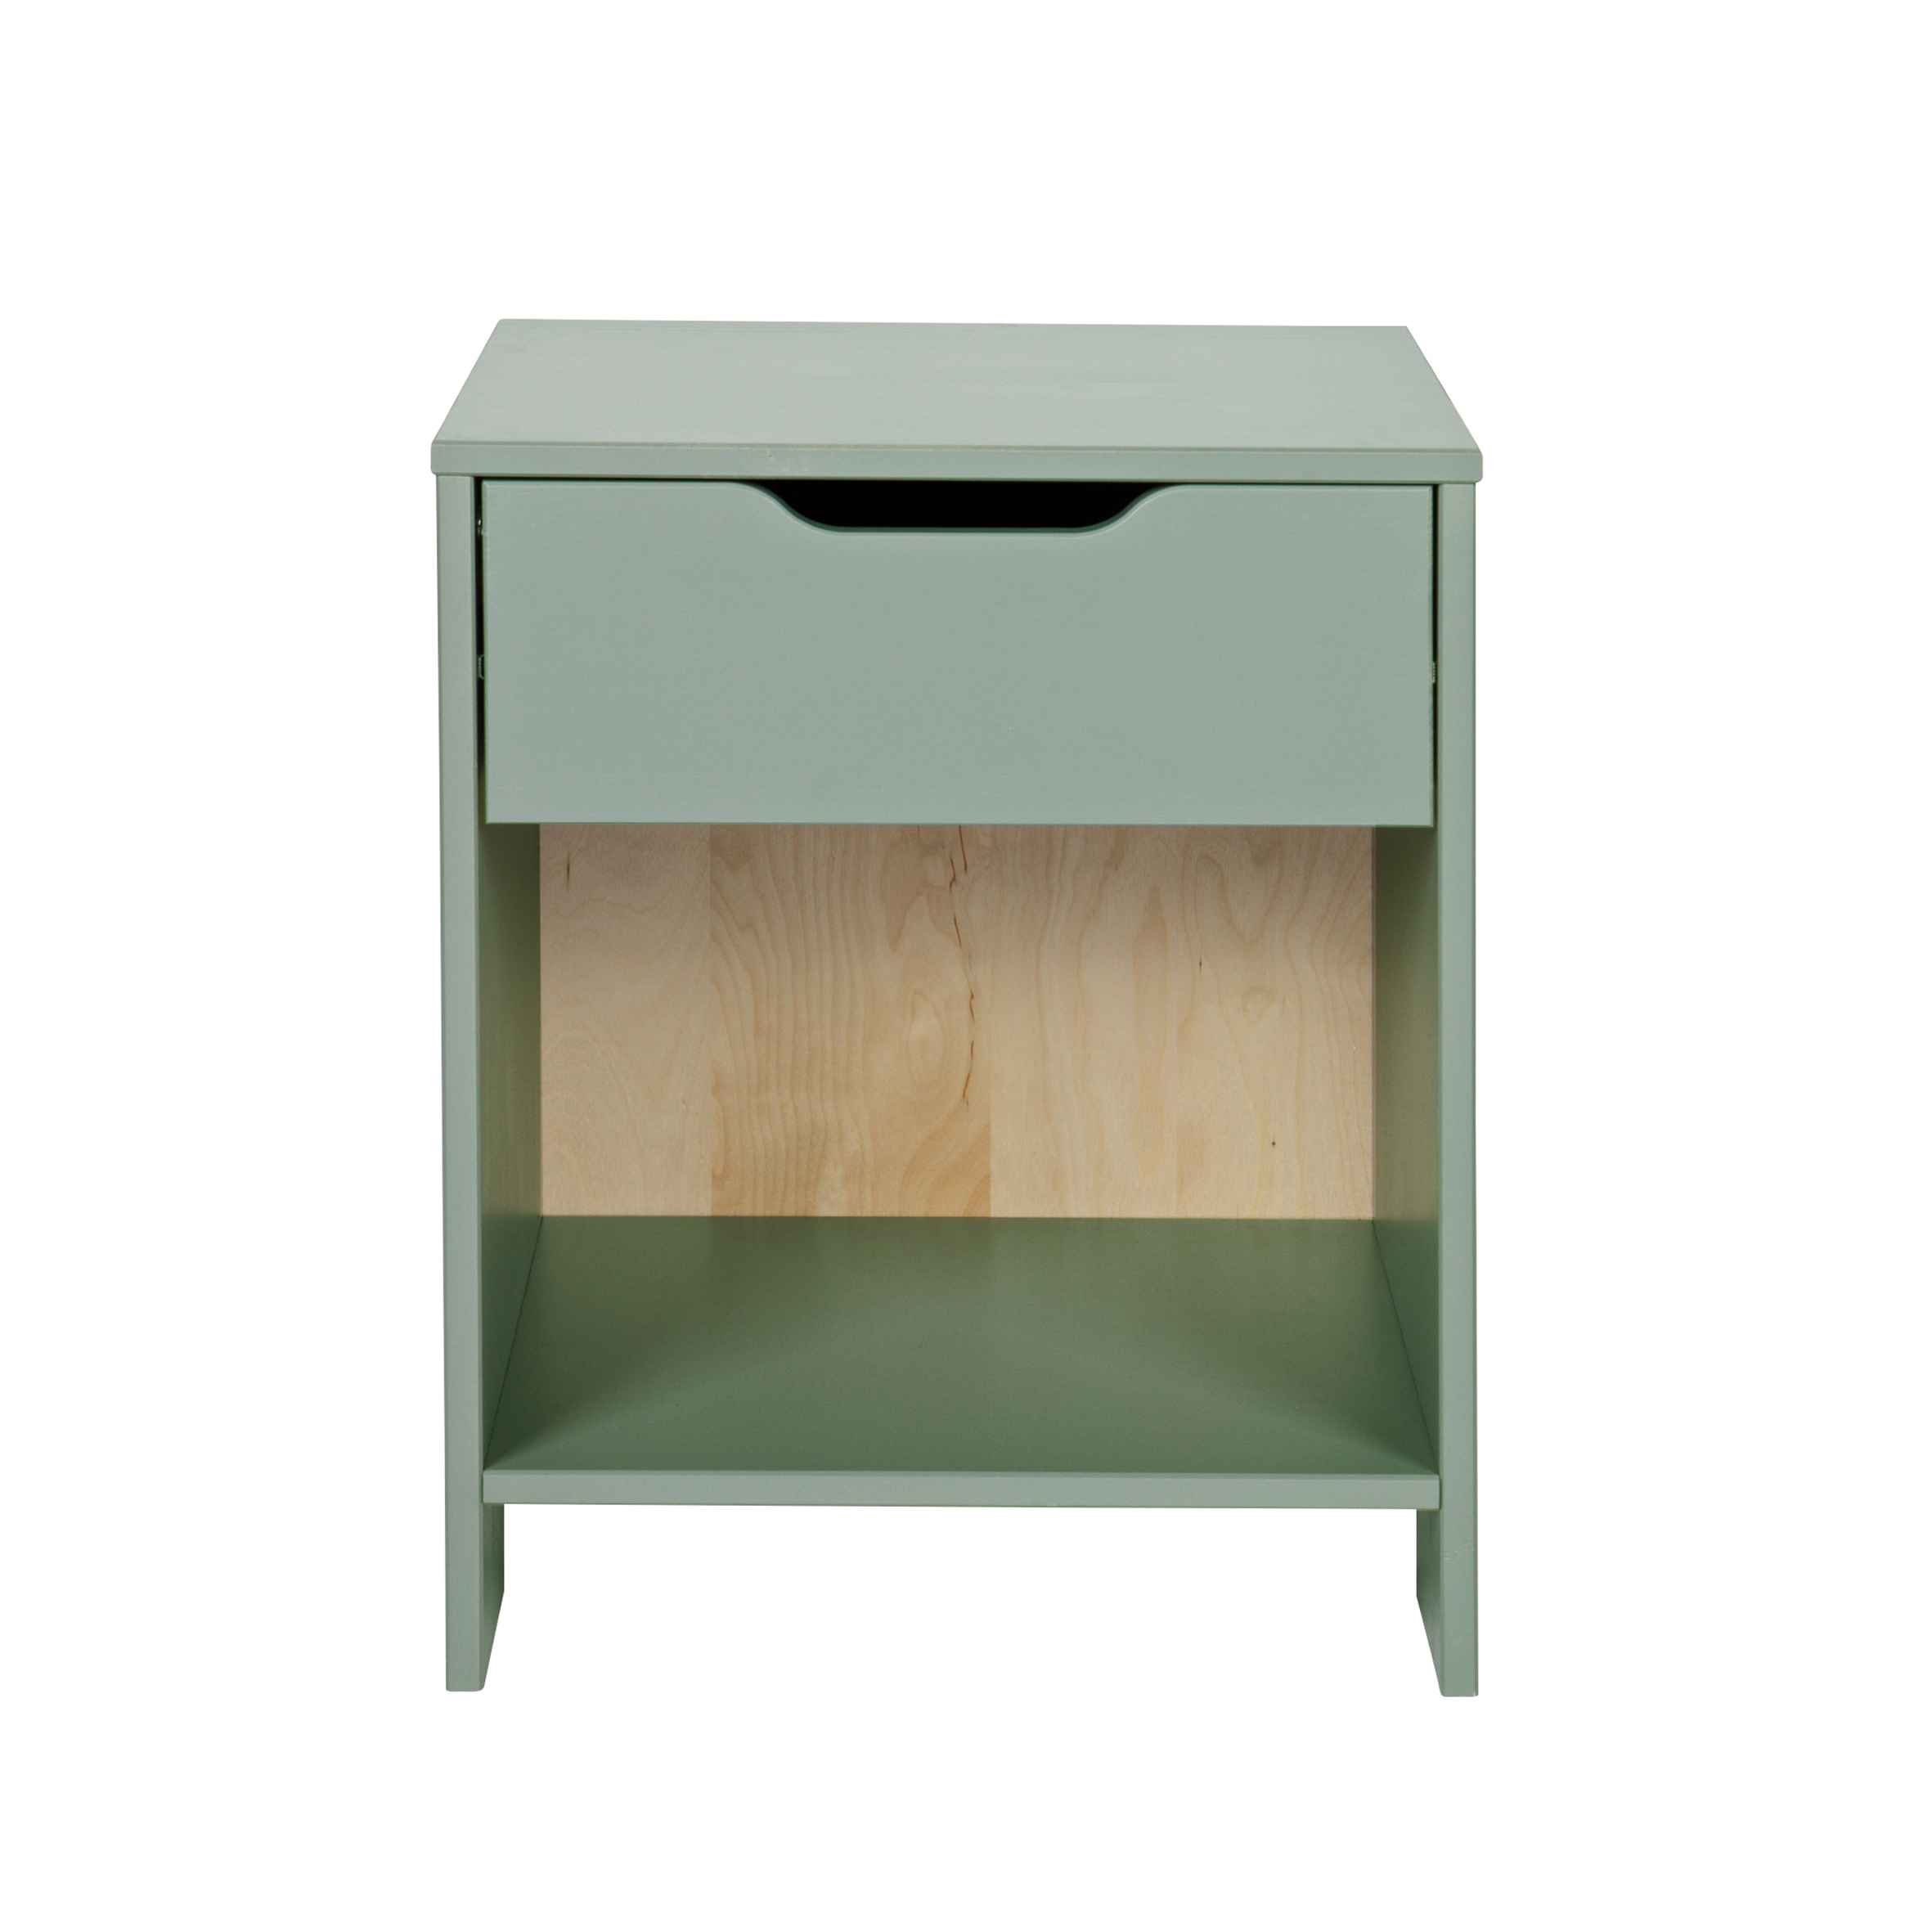 Side table with drawer, €145.06 at Cuckooland